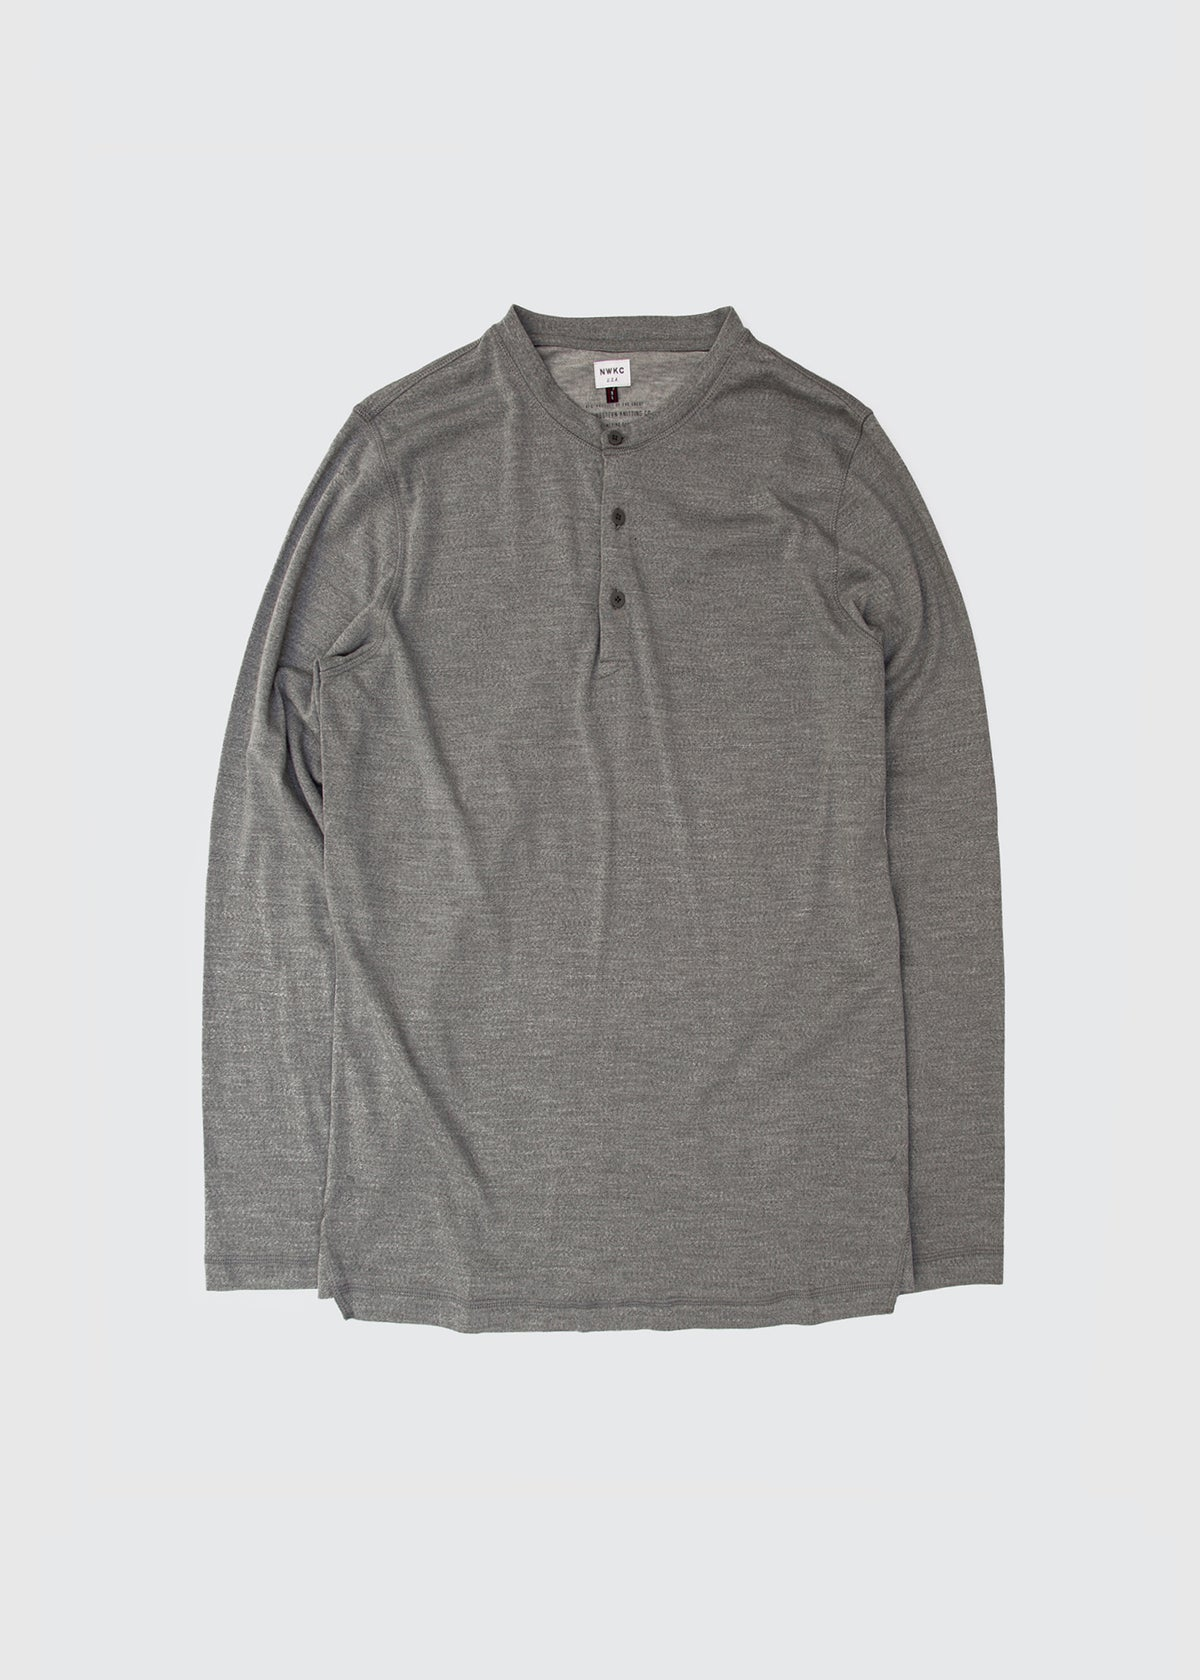 105 - LS HENLEY - GRAY - Wilson & Willy's - MPLS Neighbor Goods